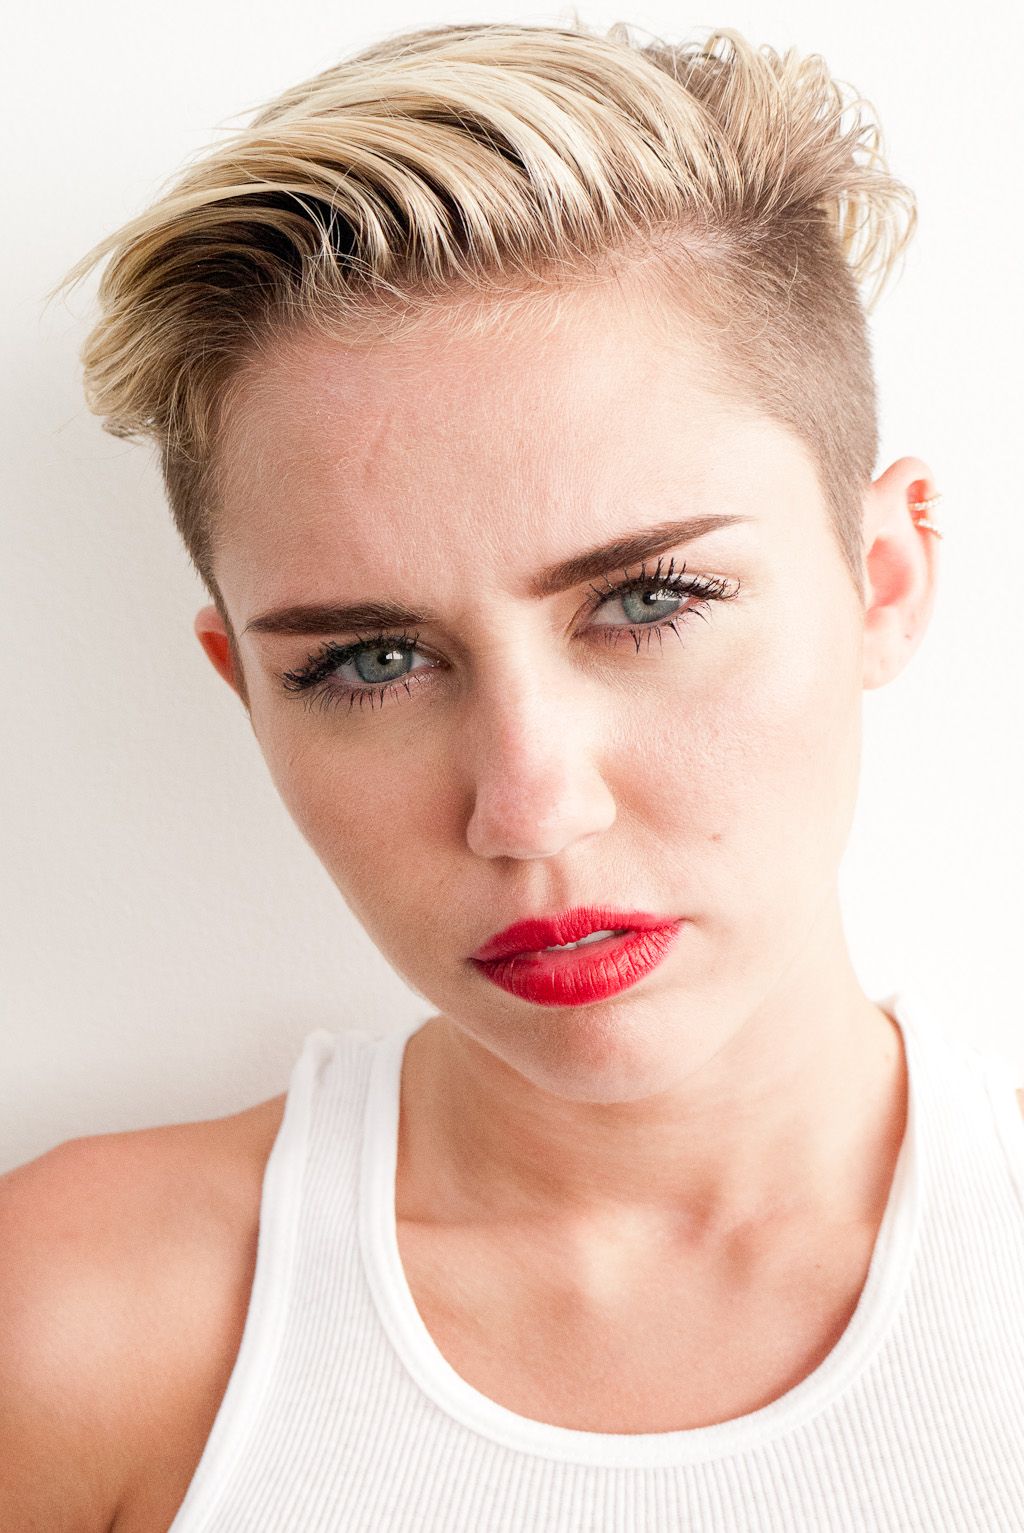 Miley Cyrus Photos: Terry Richardson (September 2013) -13 - Full Size